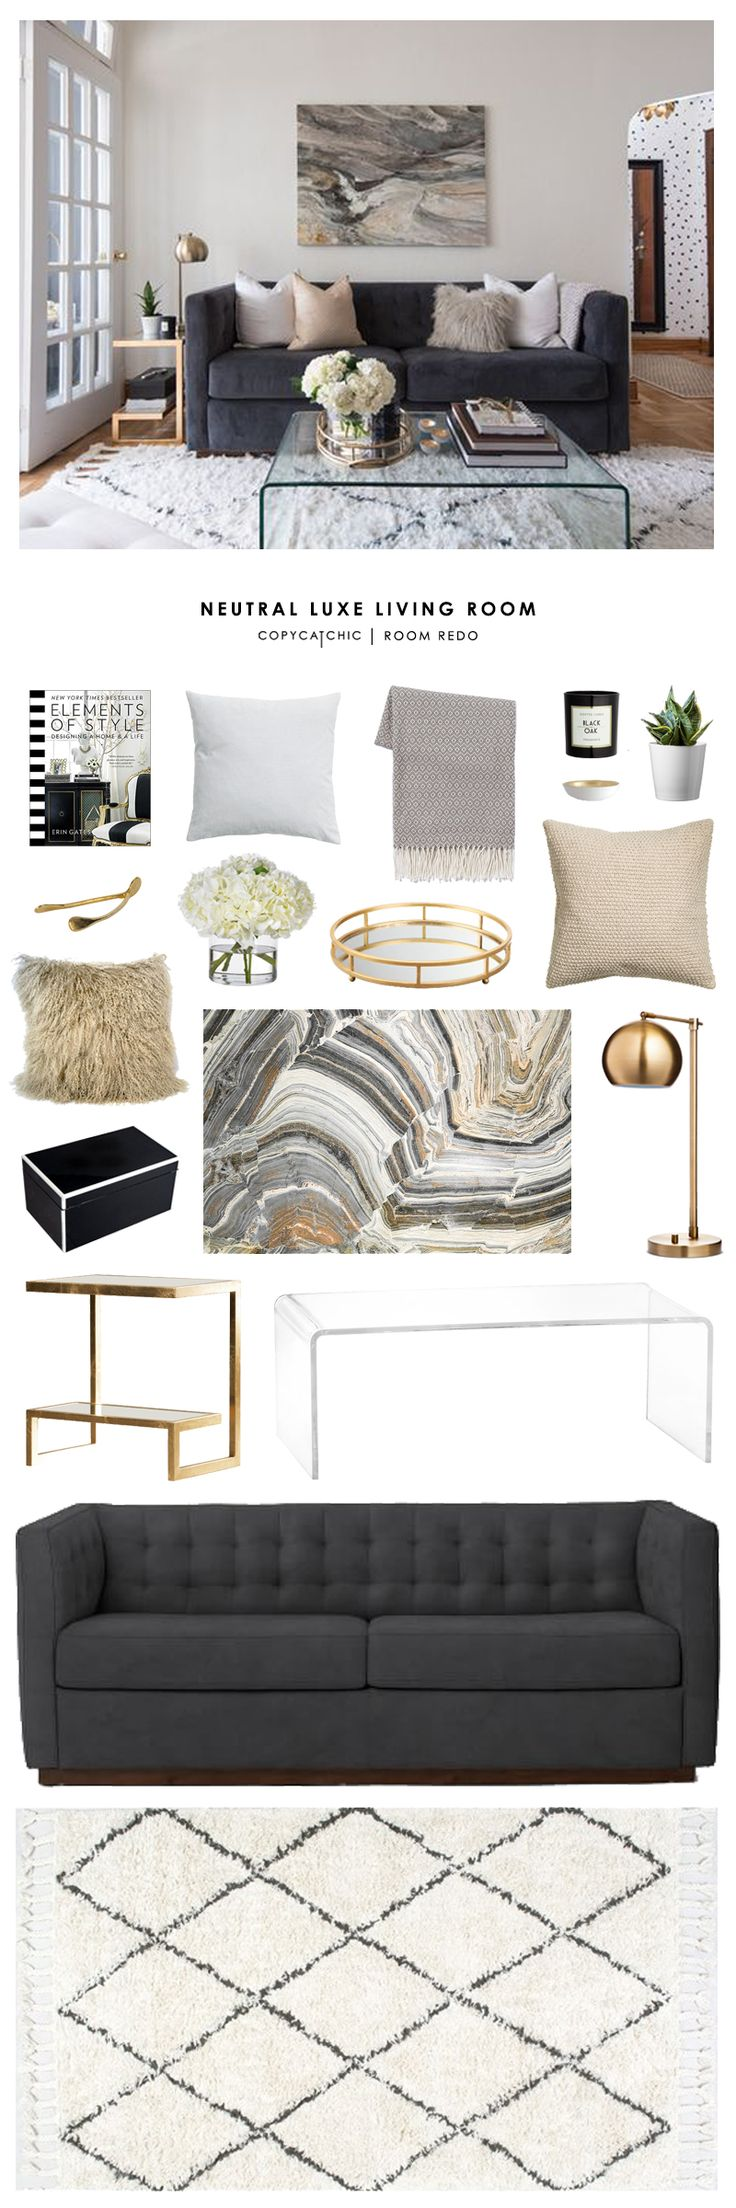 Copy Cat Chic Room Redo | Neutral Luxe Living Room More